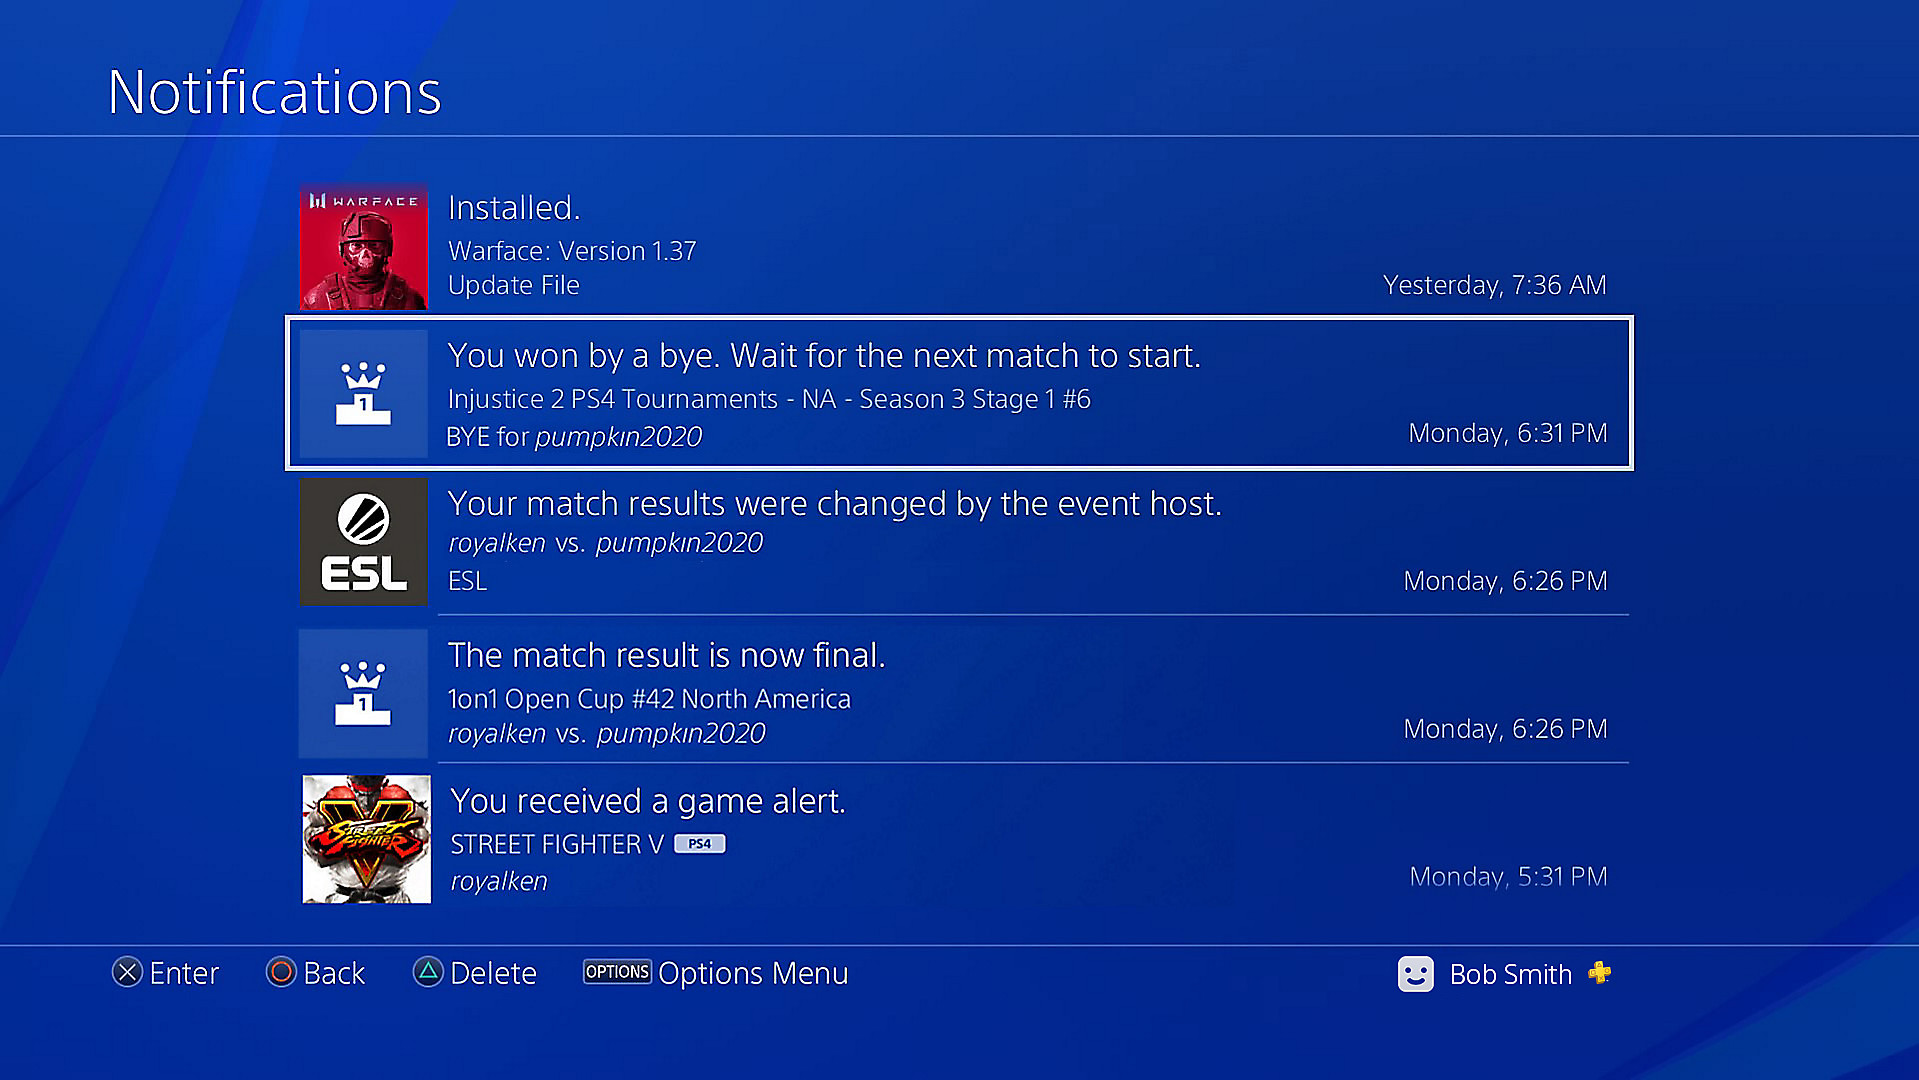 You will receive a notification of a new match on your PS4